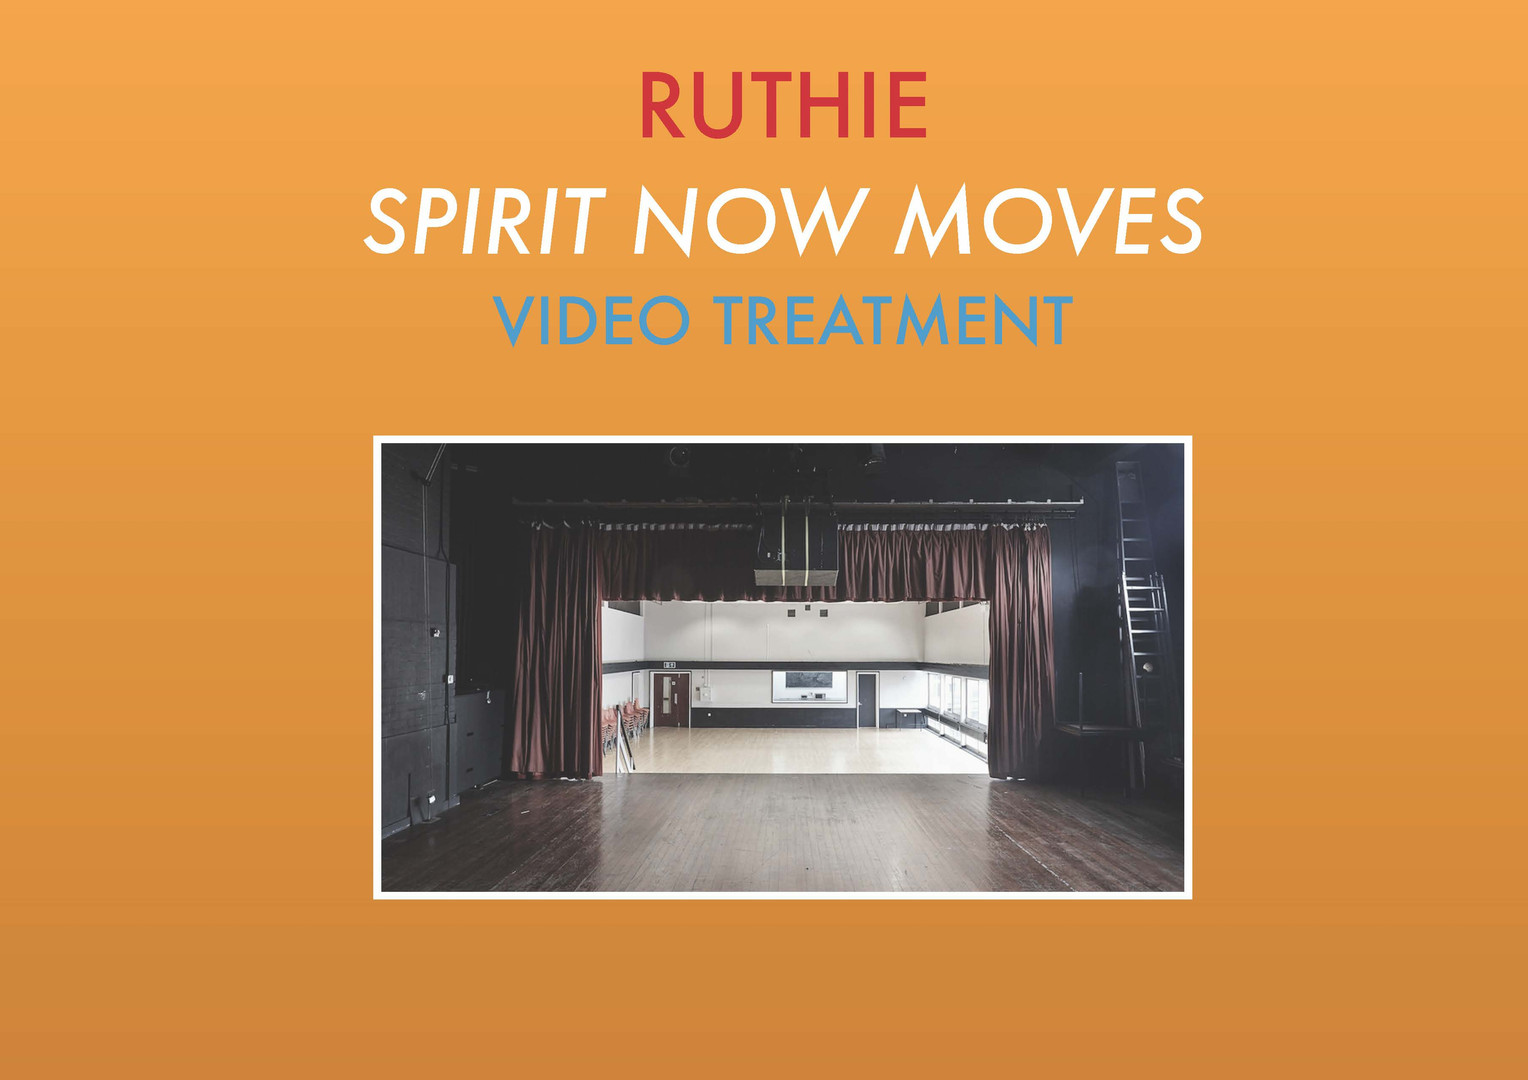 Ruthie_Spirit_Now_Moves_Treatment_Page_0